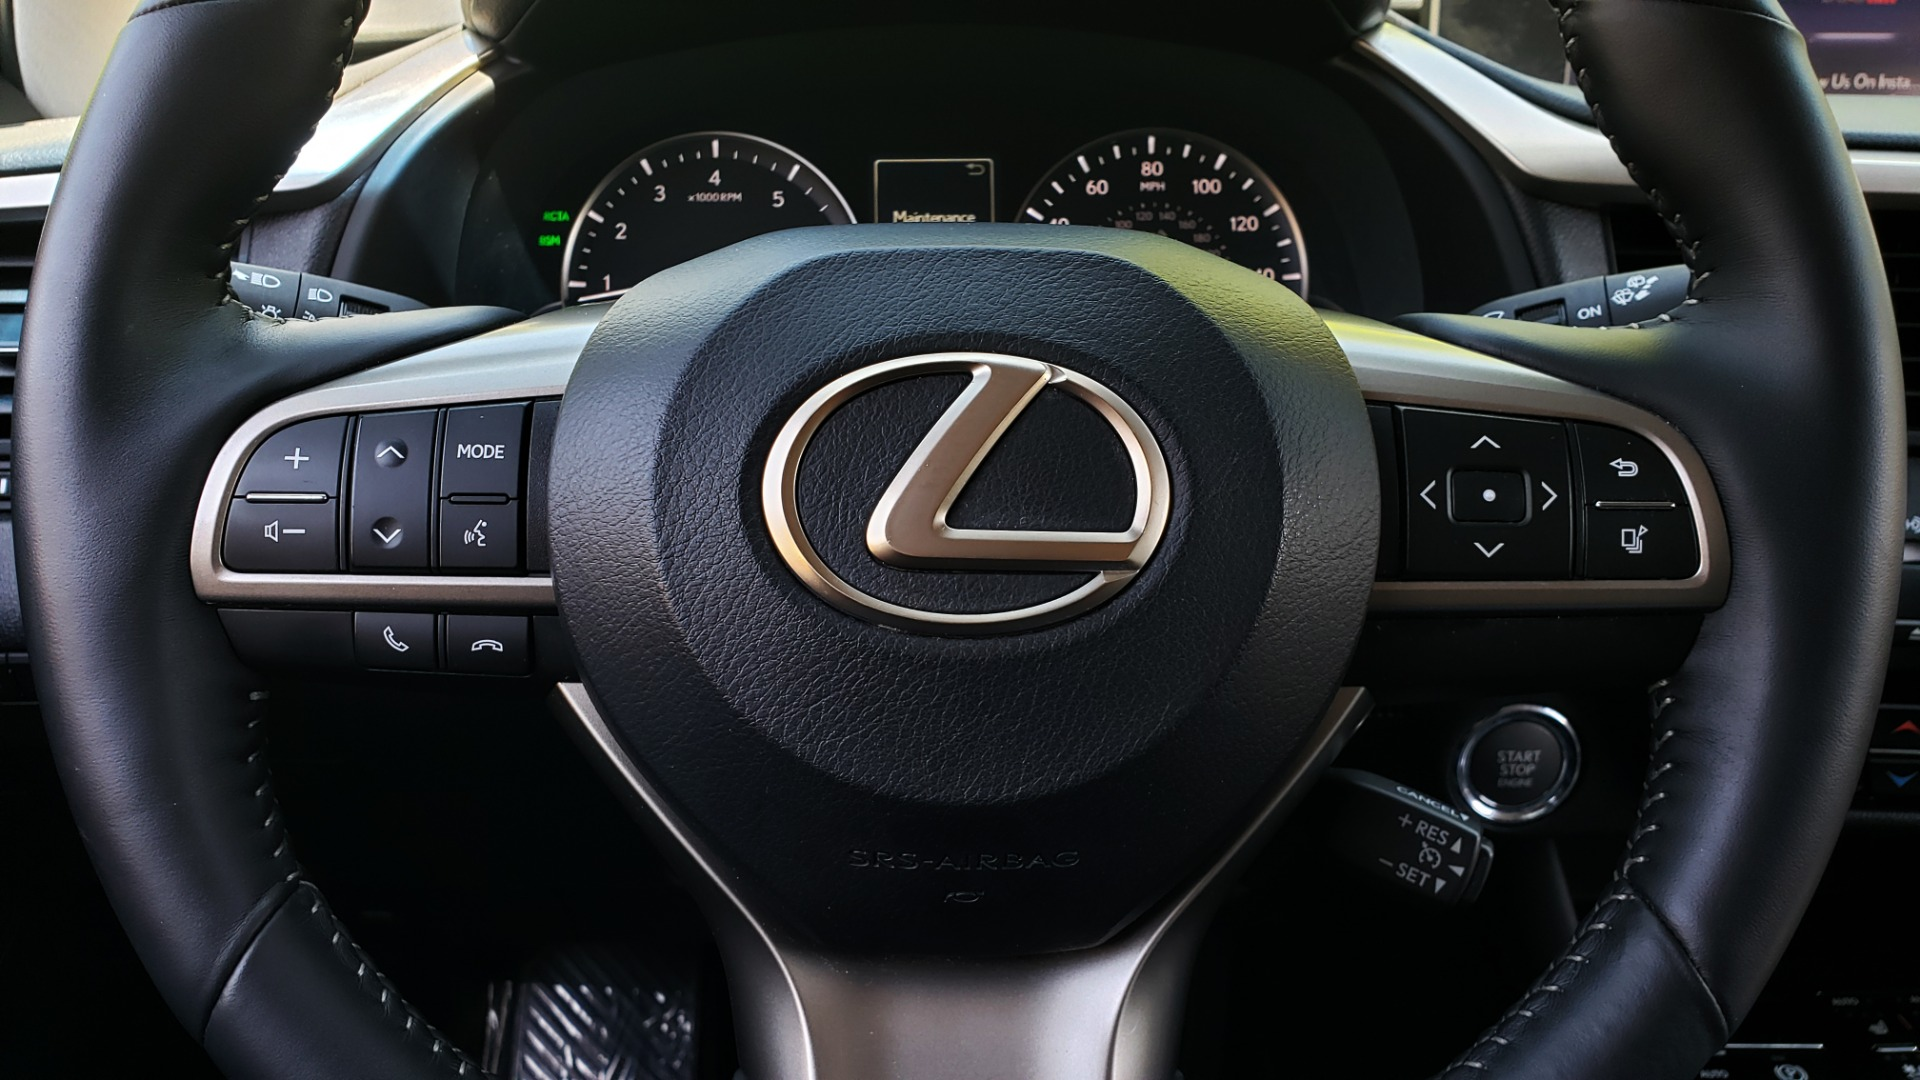 Used 2016 Lexus RX 350 PREMIUM / AWD / VENT SEATS / SUNROOF / BSM for sale Sold at Formula Imports in Charlotte NC 28227 41